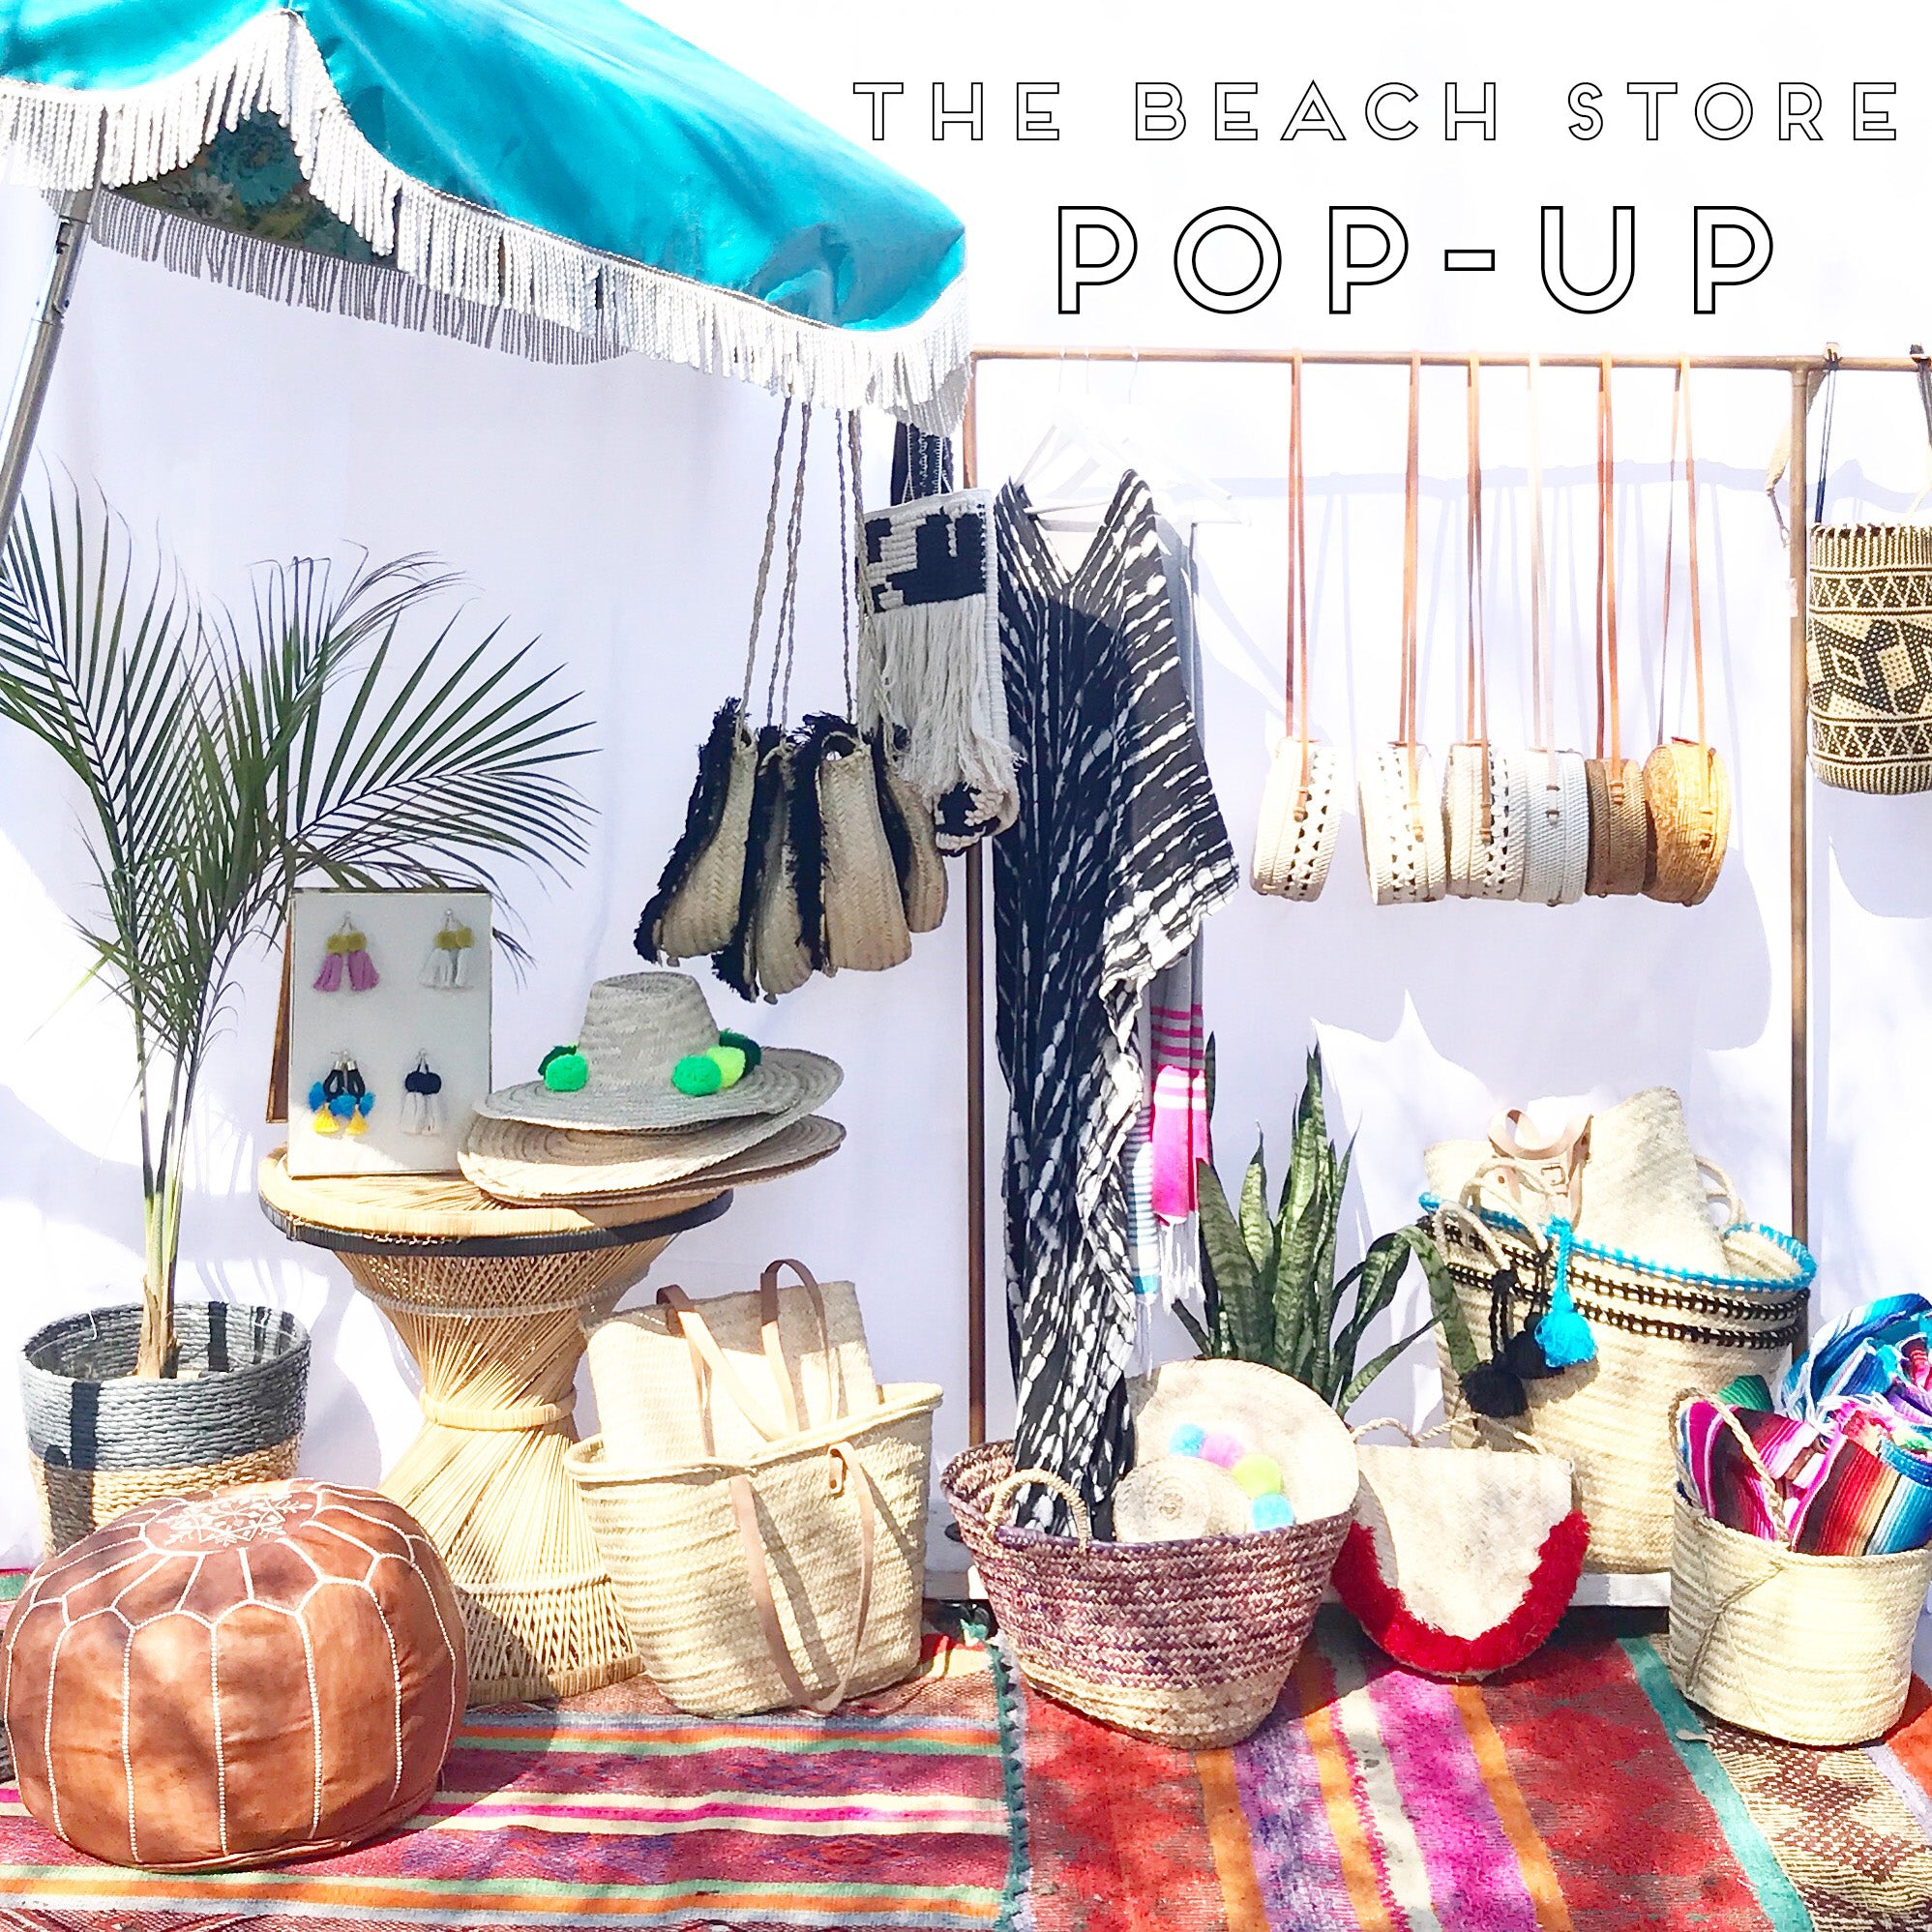 Sunshine Tienda's Beach Pop Up Shop